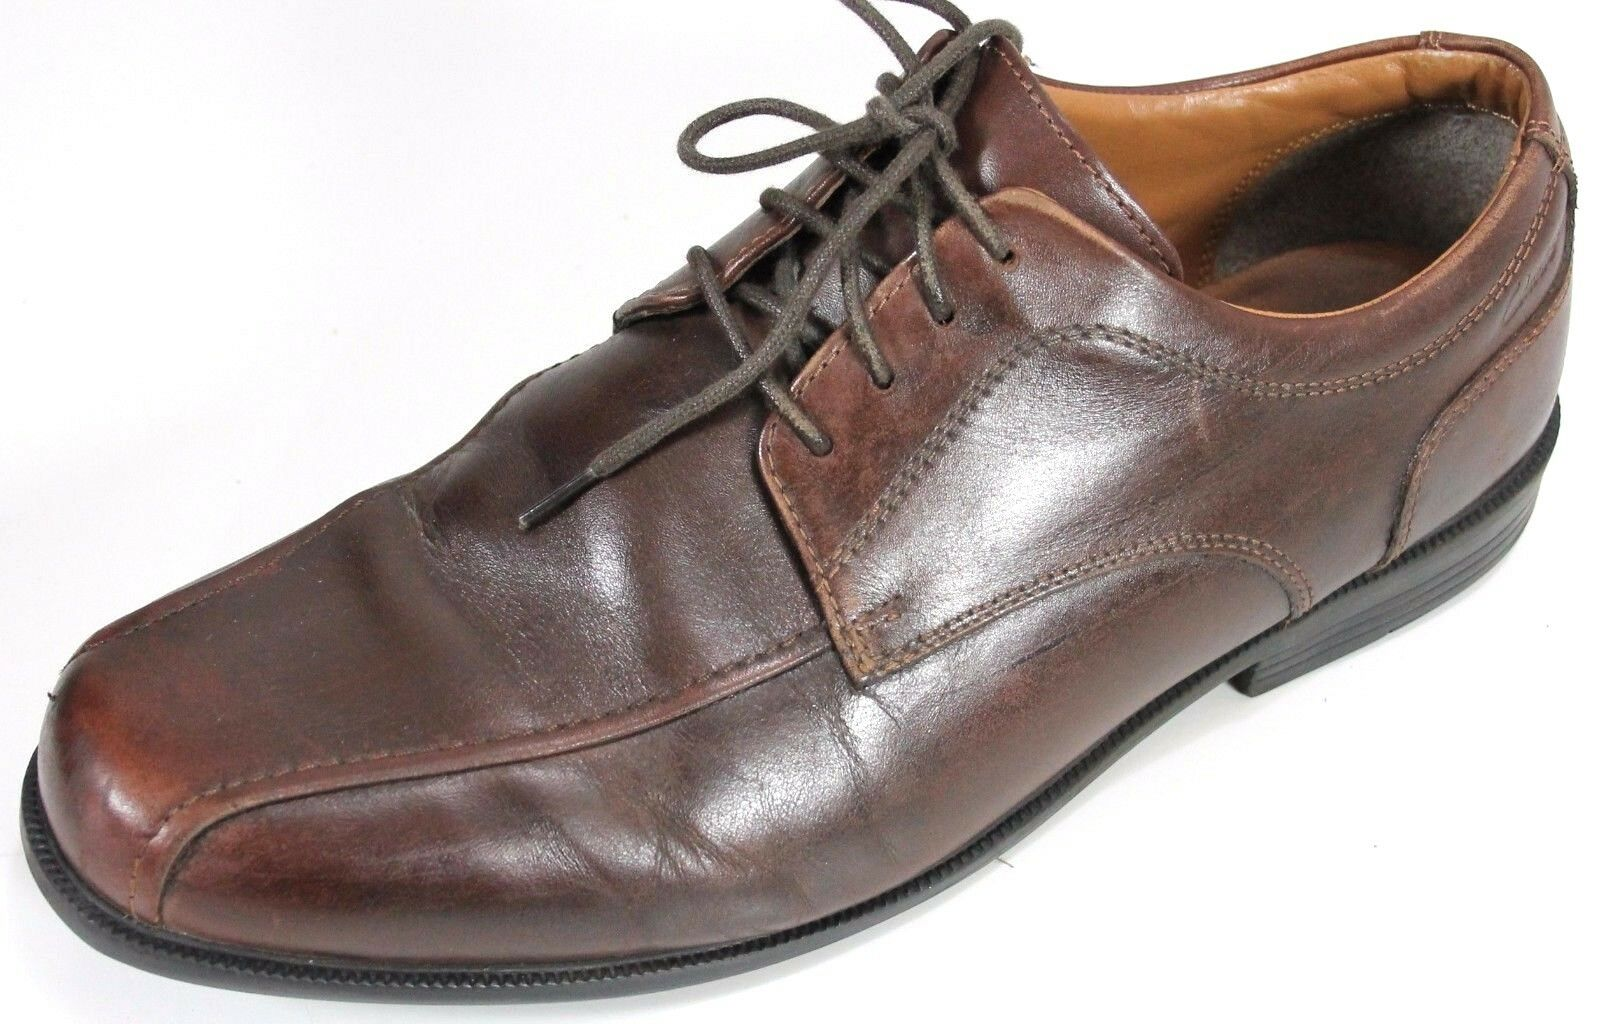 Clarks Men's  89 Beeston Stride Oxford Dress shoes Size 10 Brown Leather